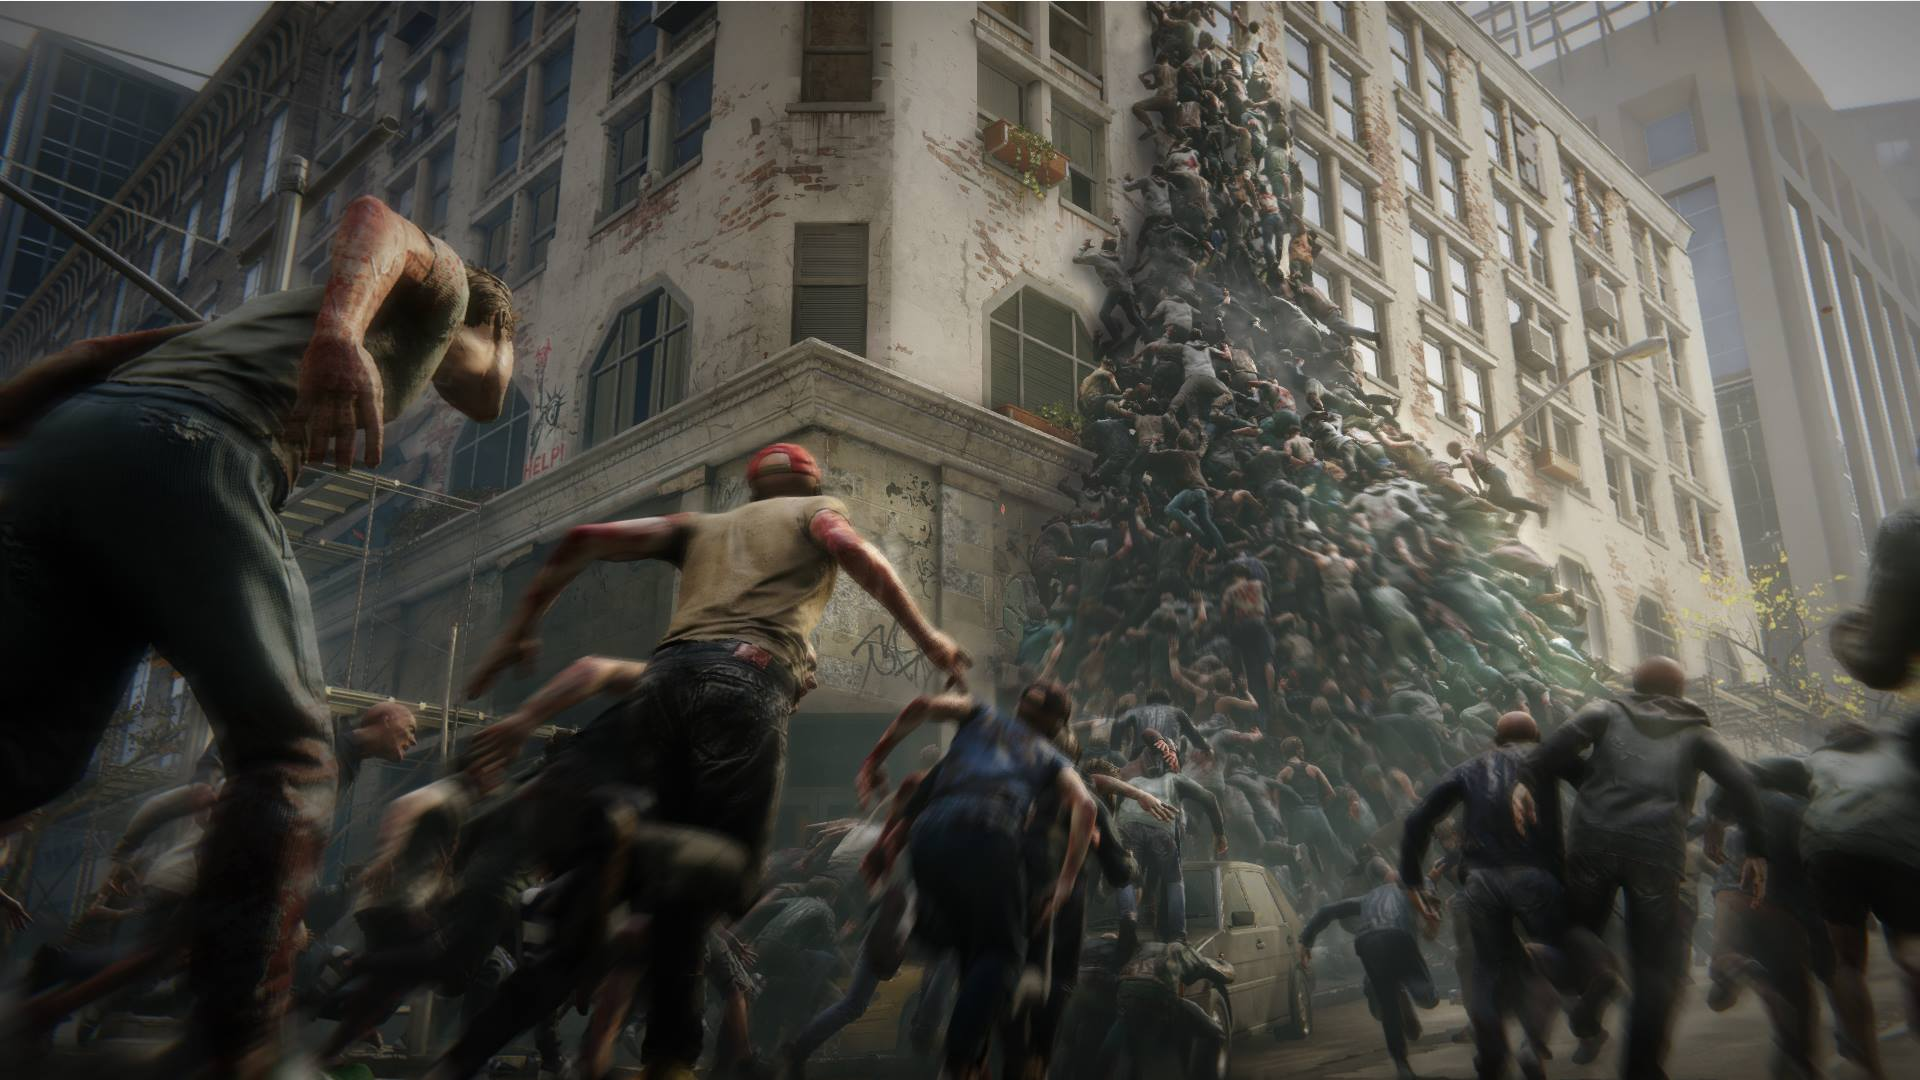 World War Z An Official Tie In Game Of The Movie Starring Brad Pitt Was Announced In Early December By Paramount Pictures And Saber Interactive